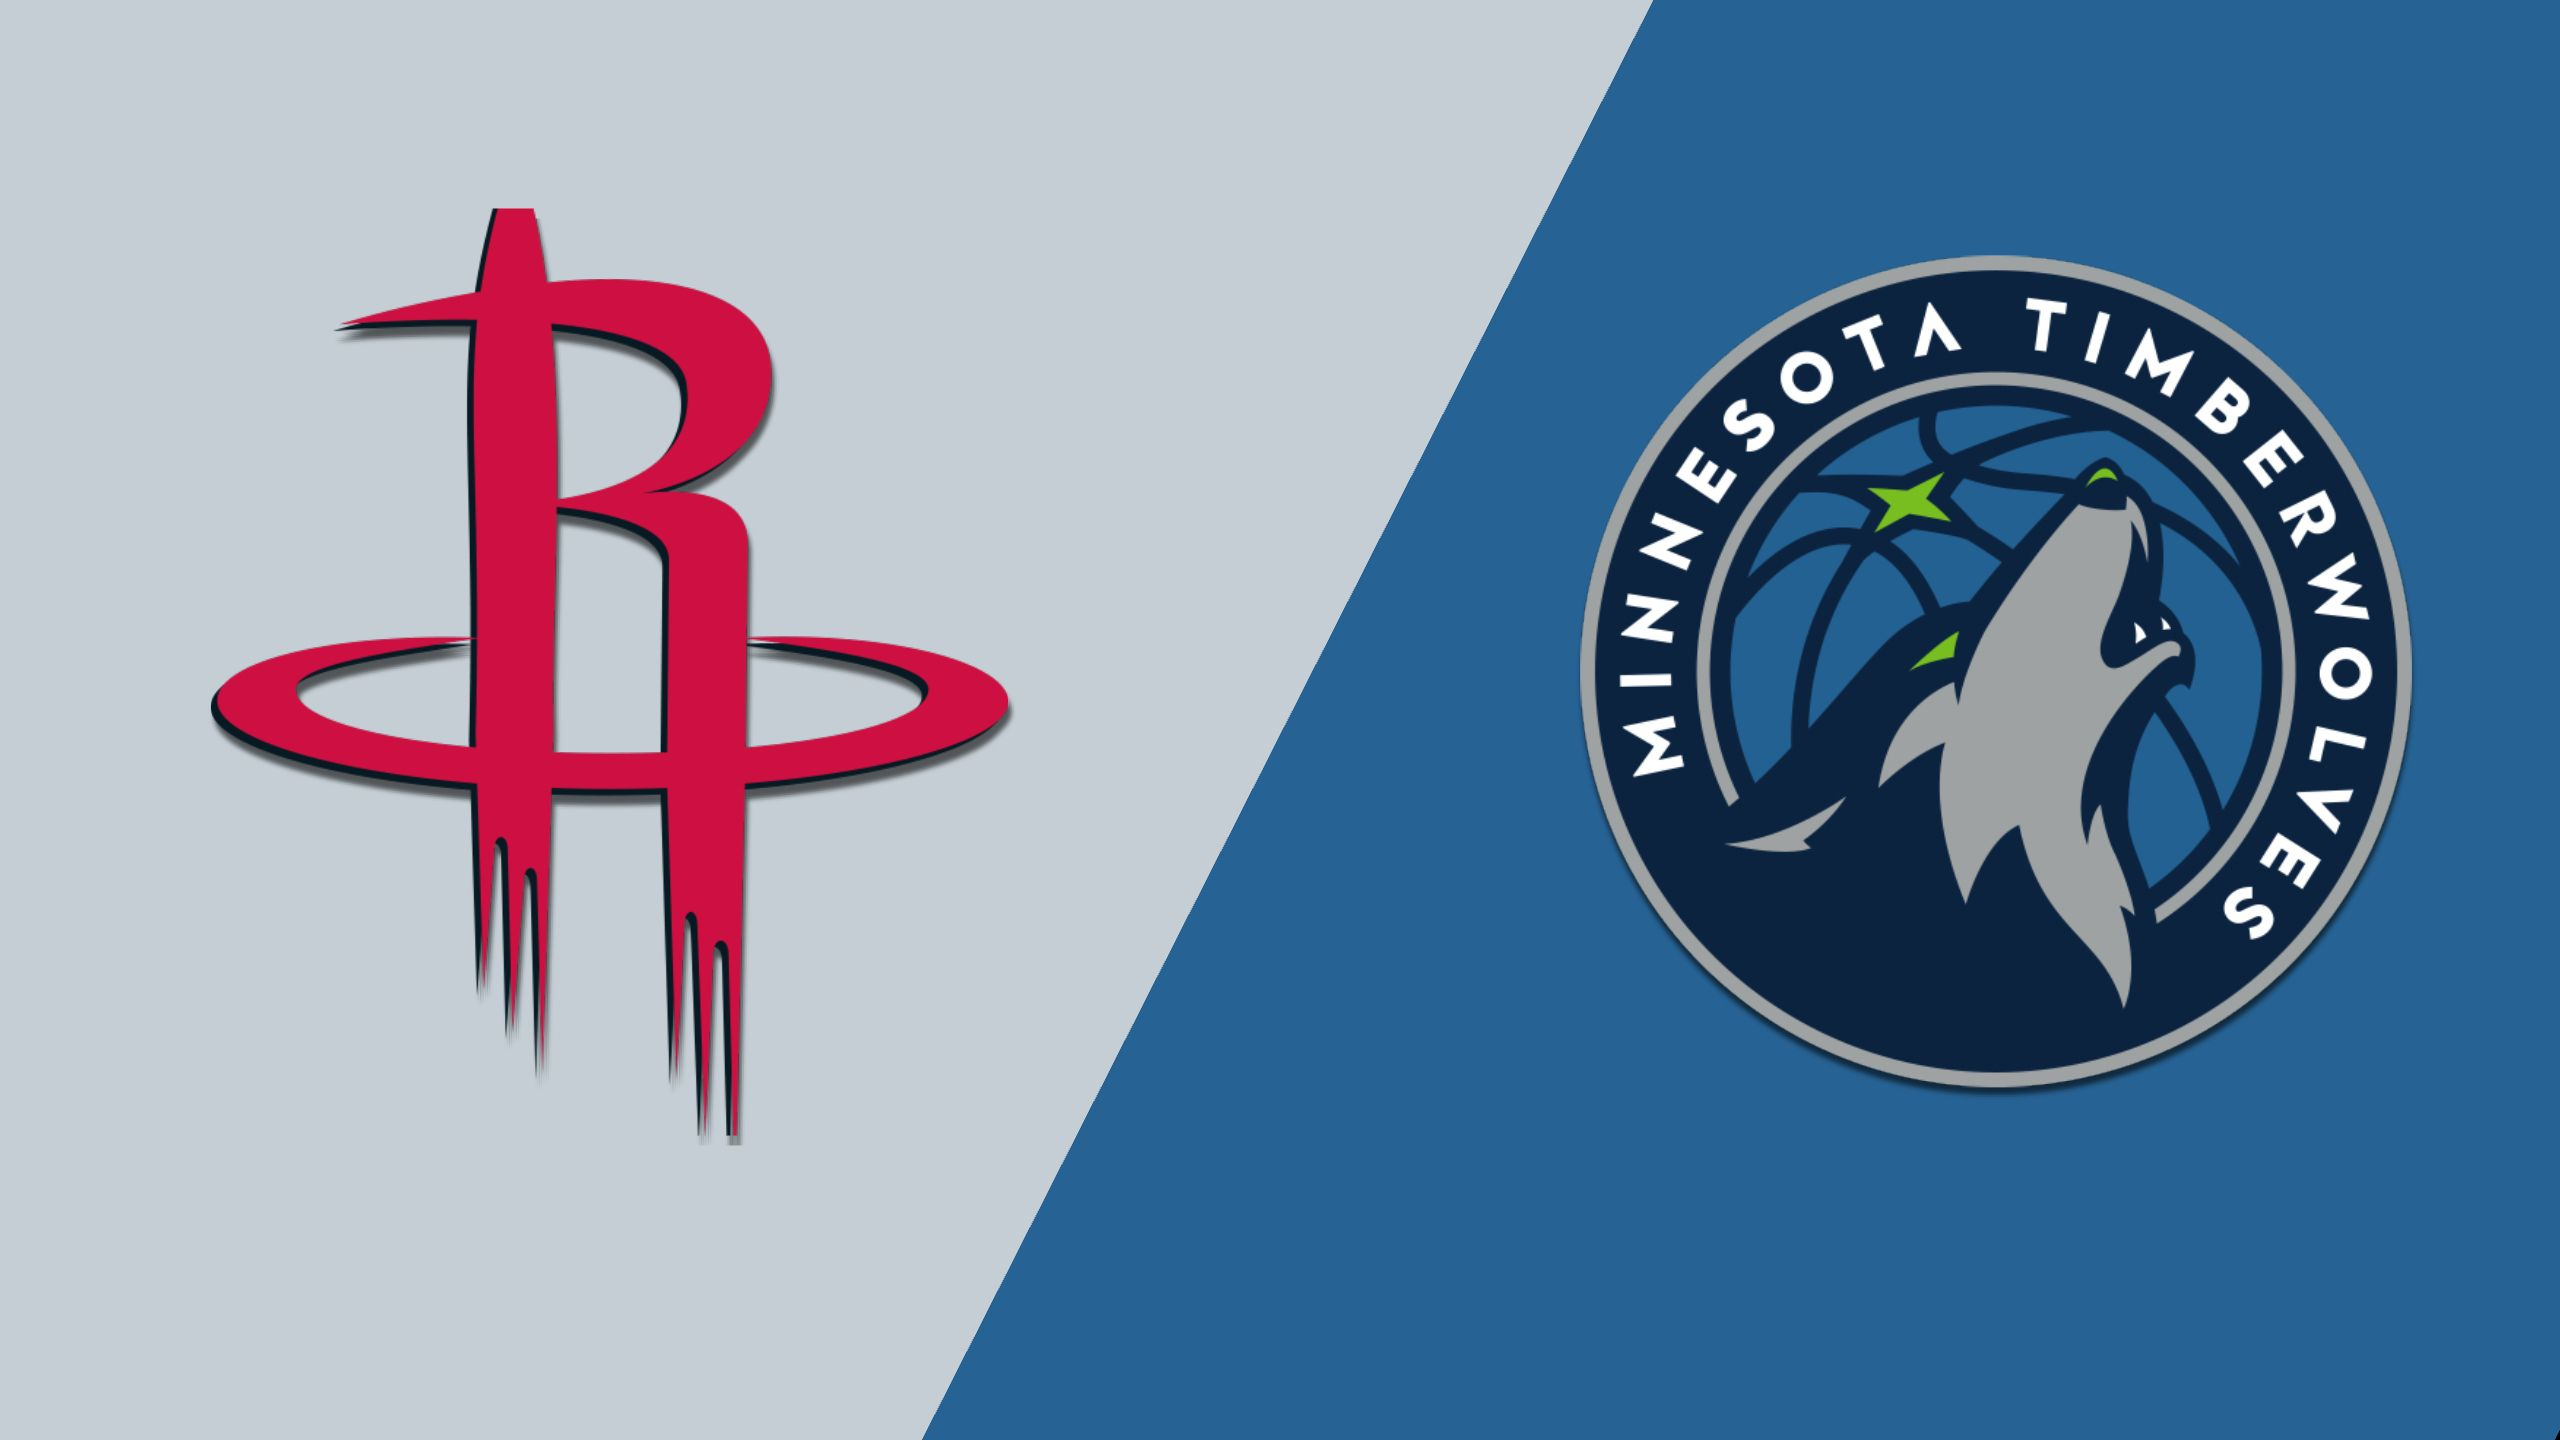 In Spanish - Houston Rockets vs. Minnesota Timberwolves (First Round, Game 3)